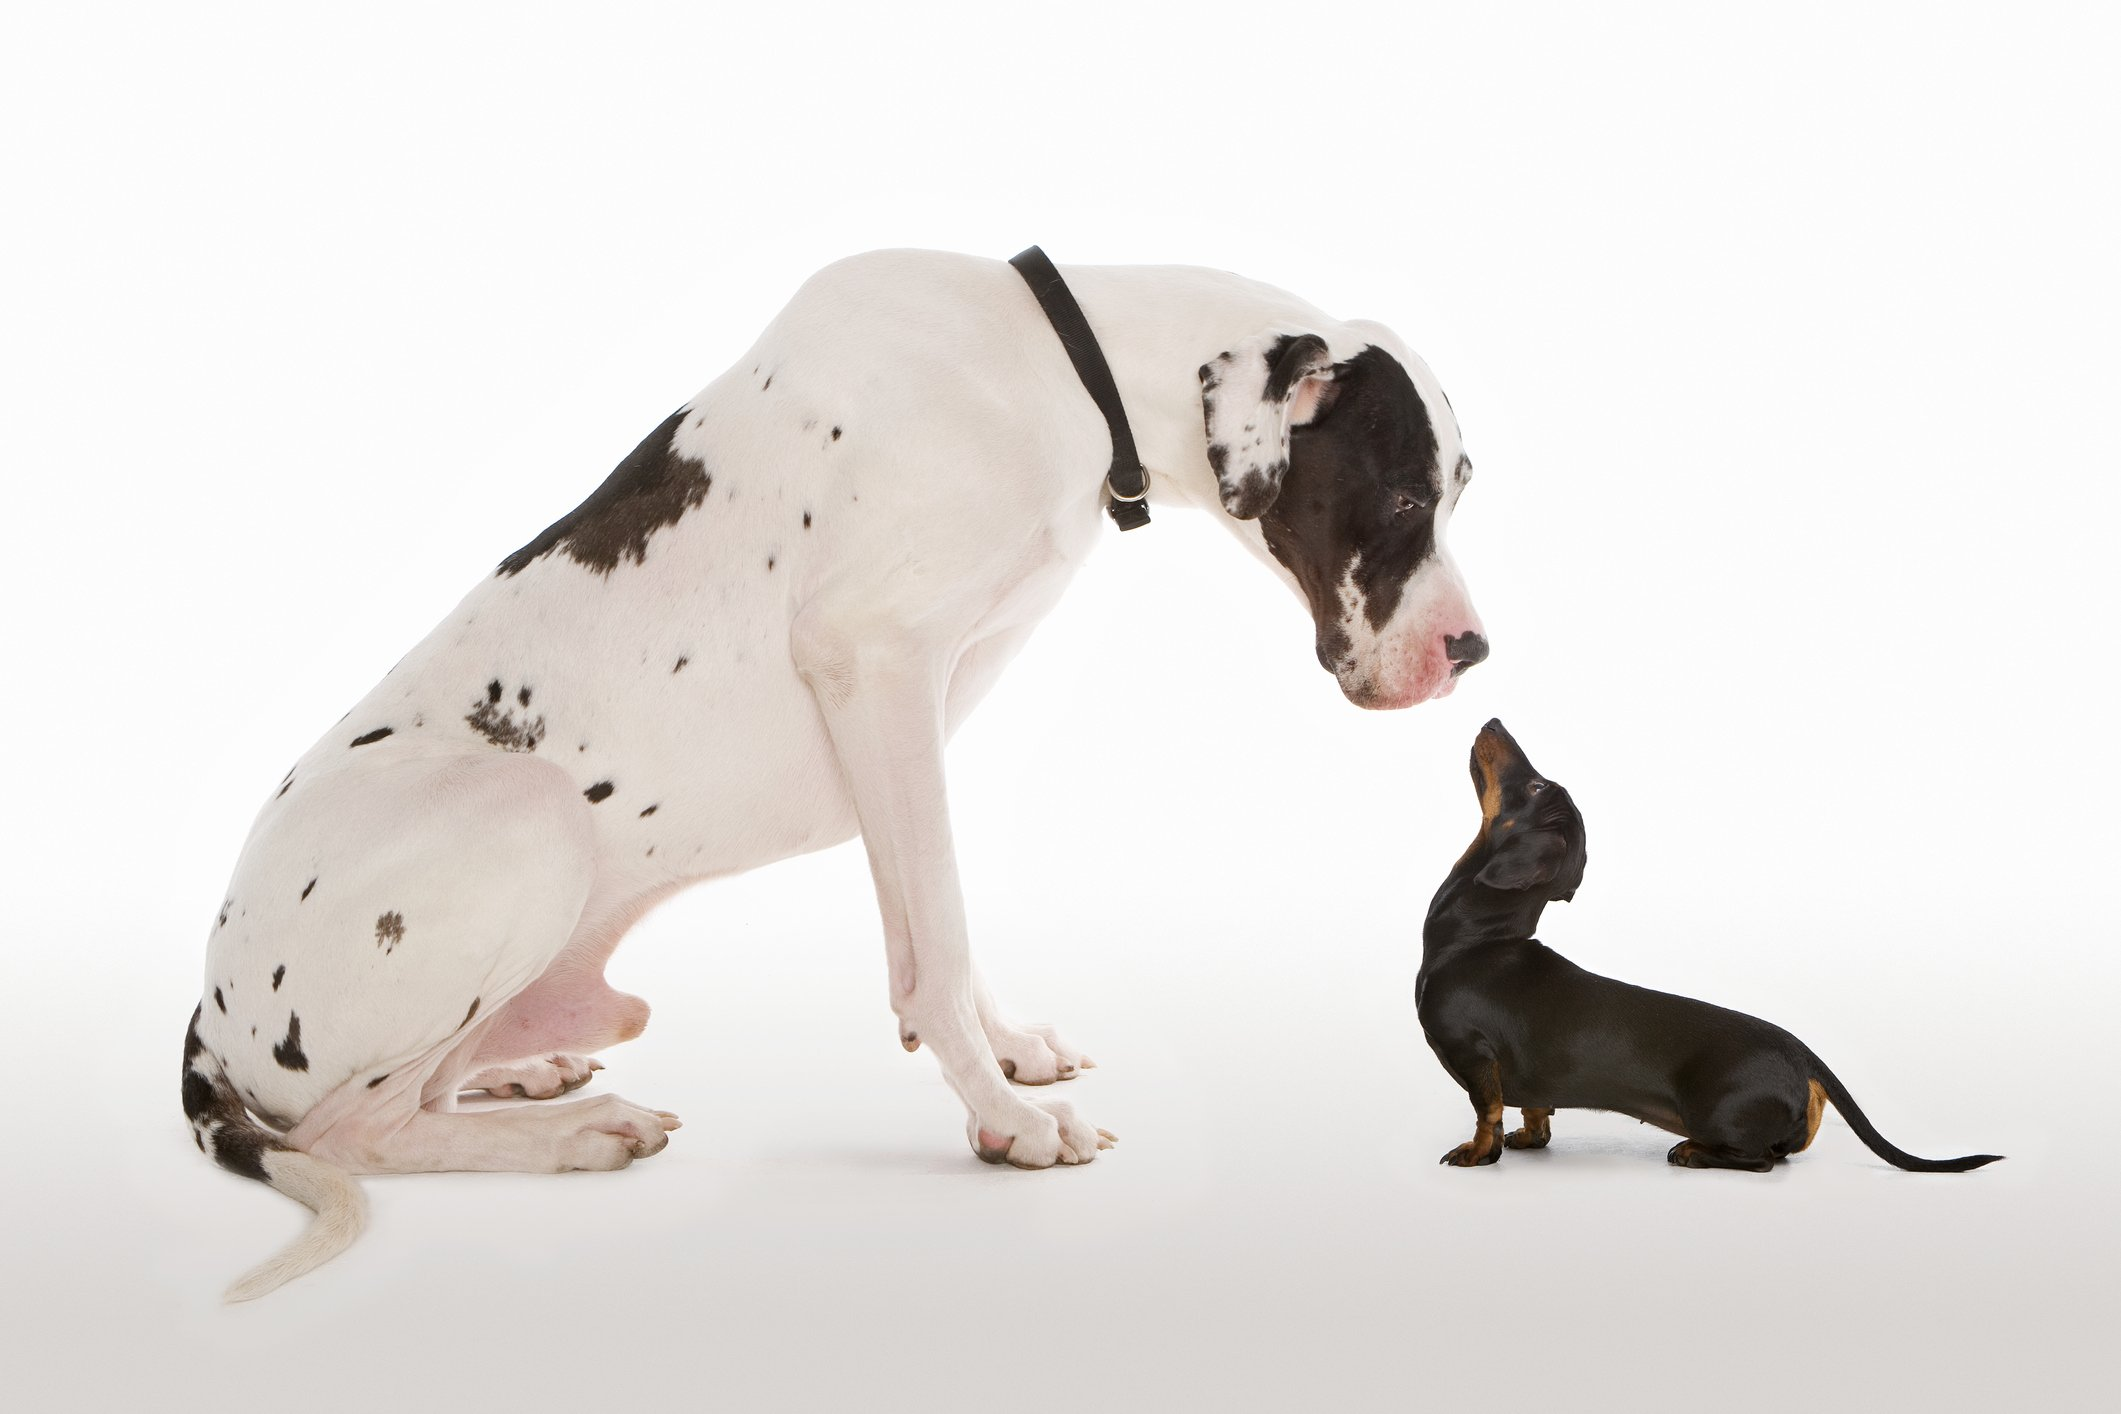 Harlequin Great Dane and Miniature Dachshund sitting face to face in studio - large format posters